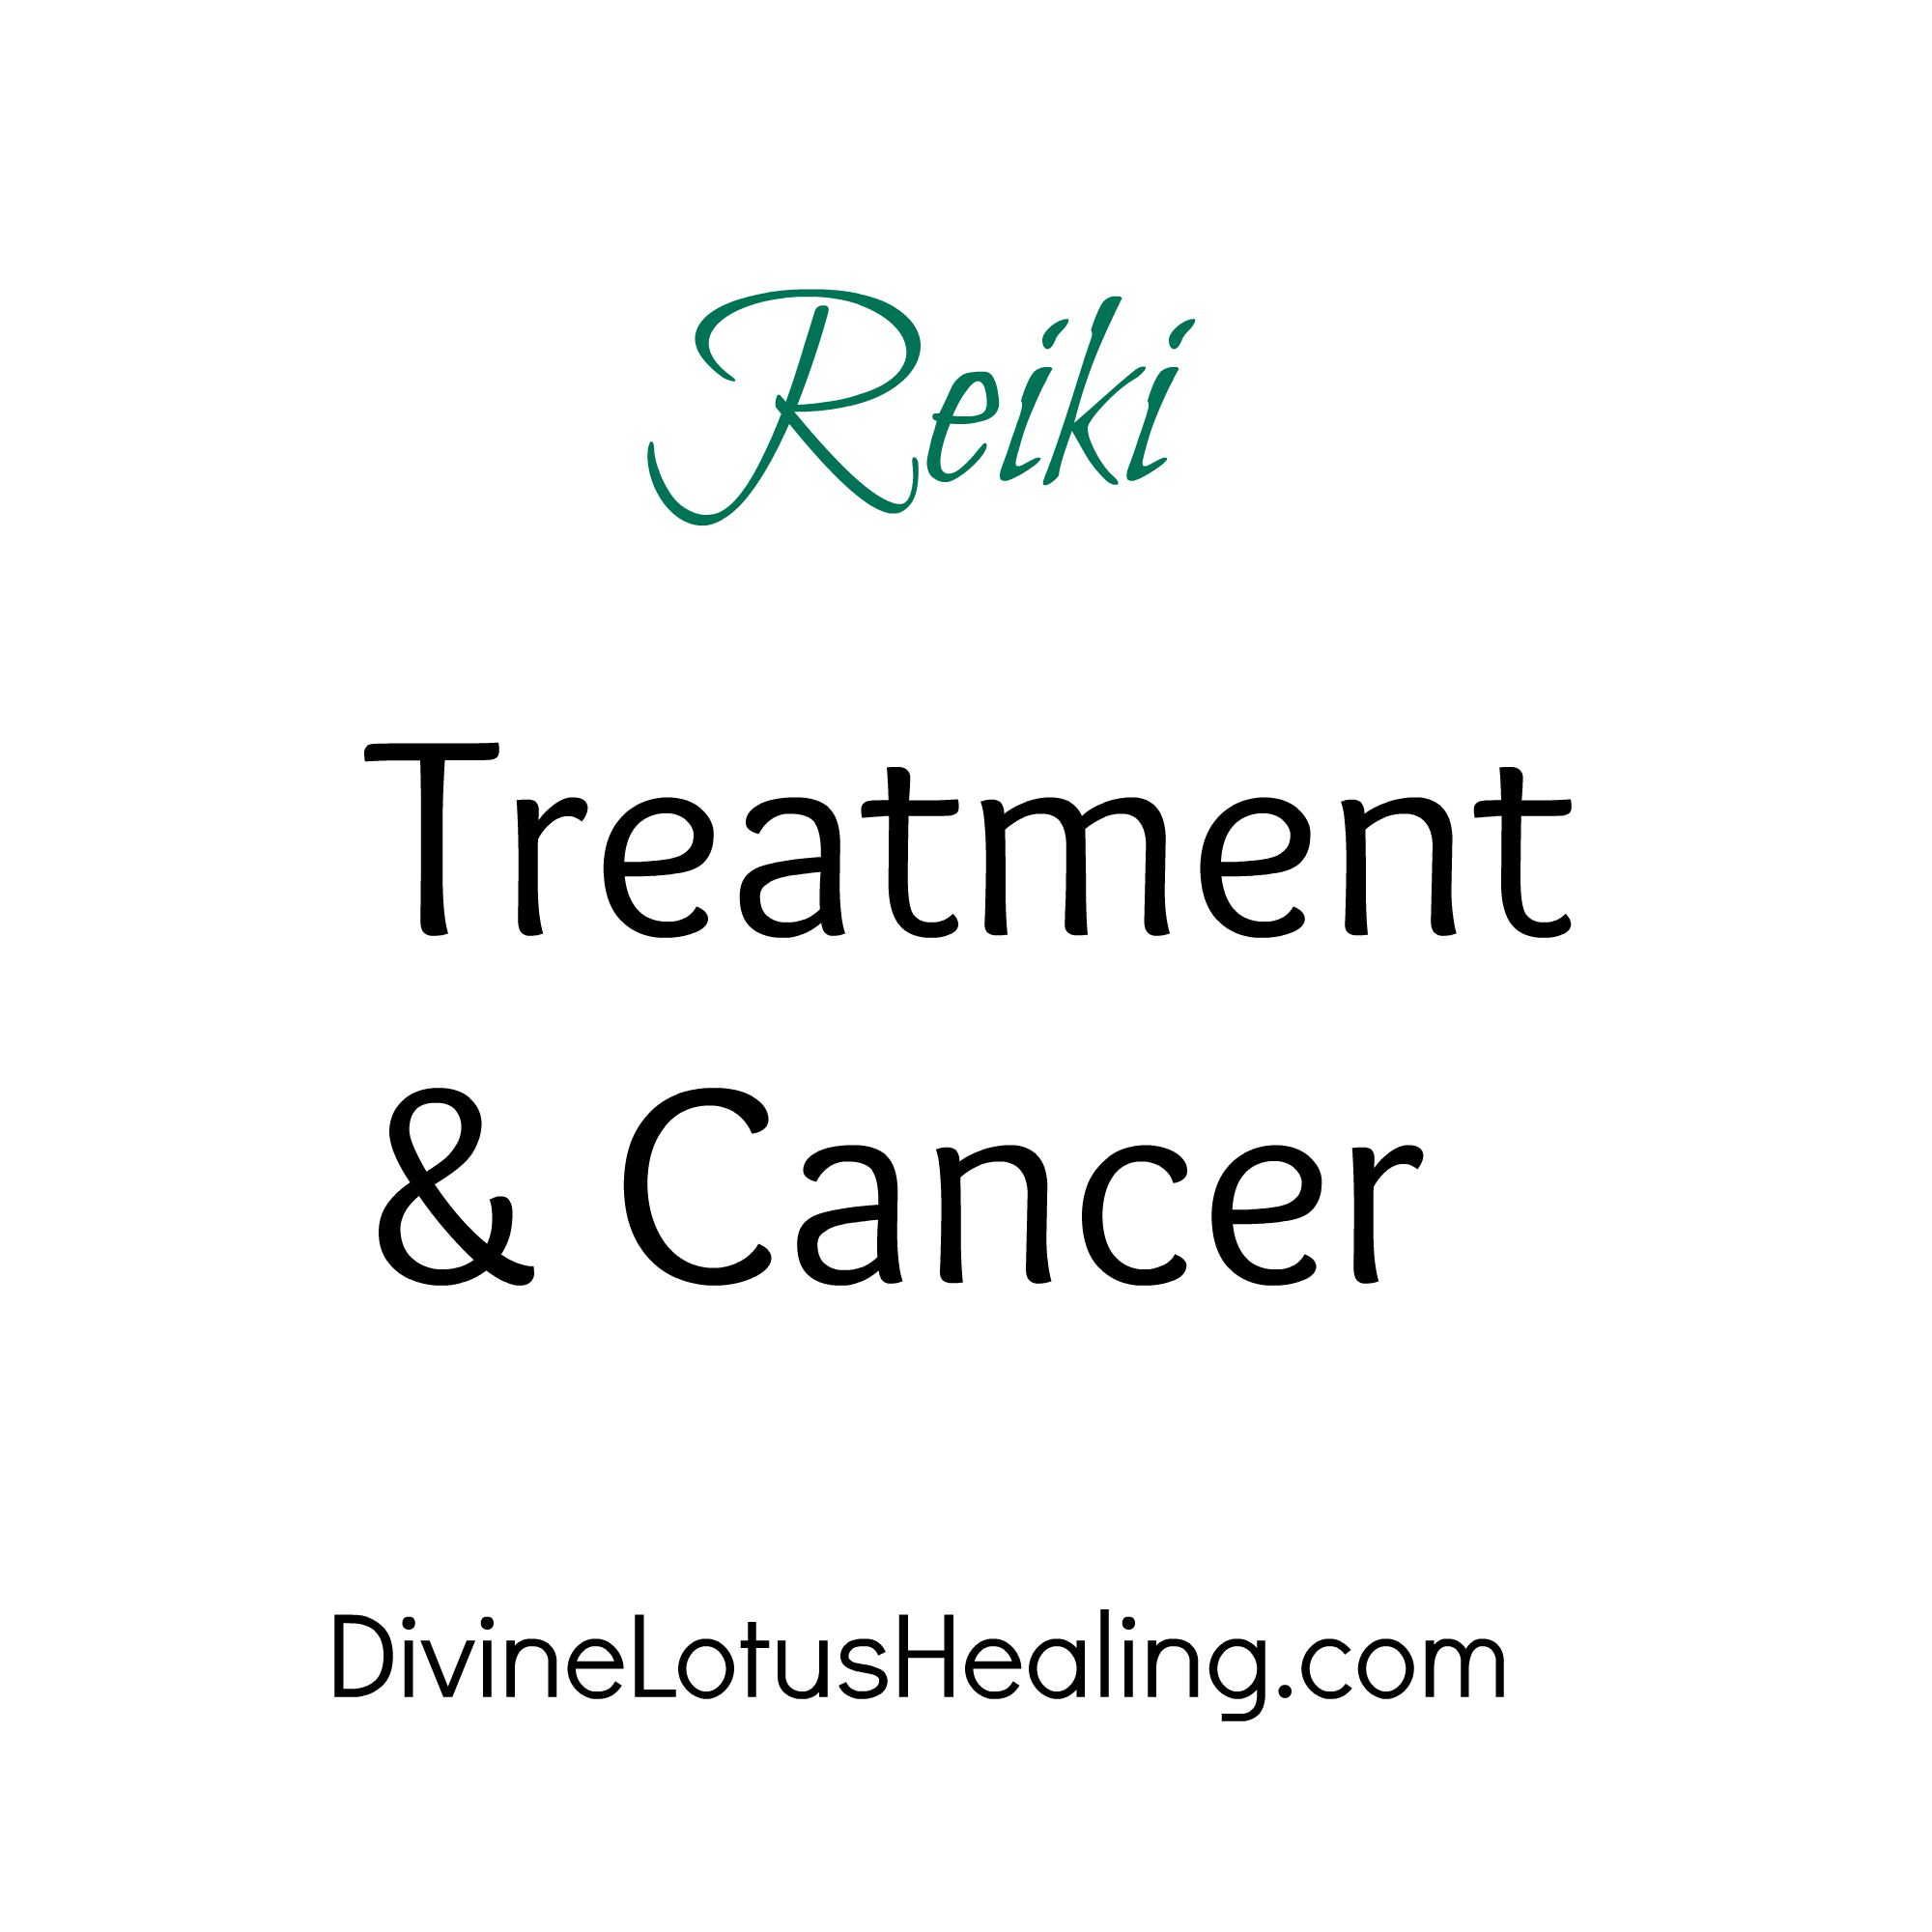 Divine Lotus Healing Reiki Treatment and Cancer